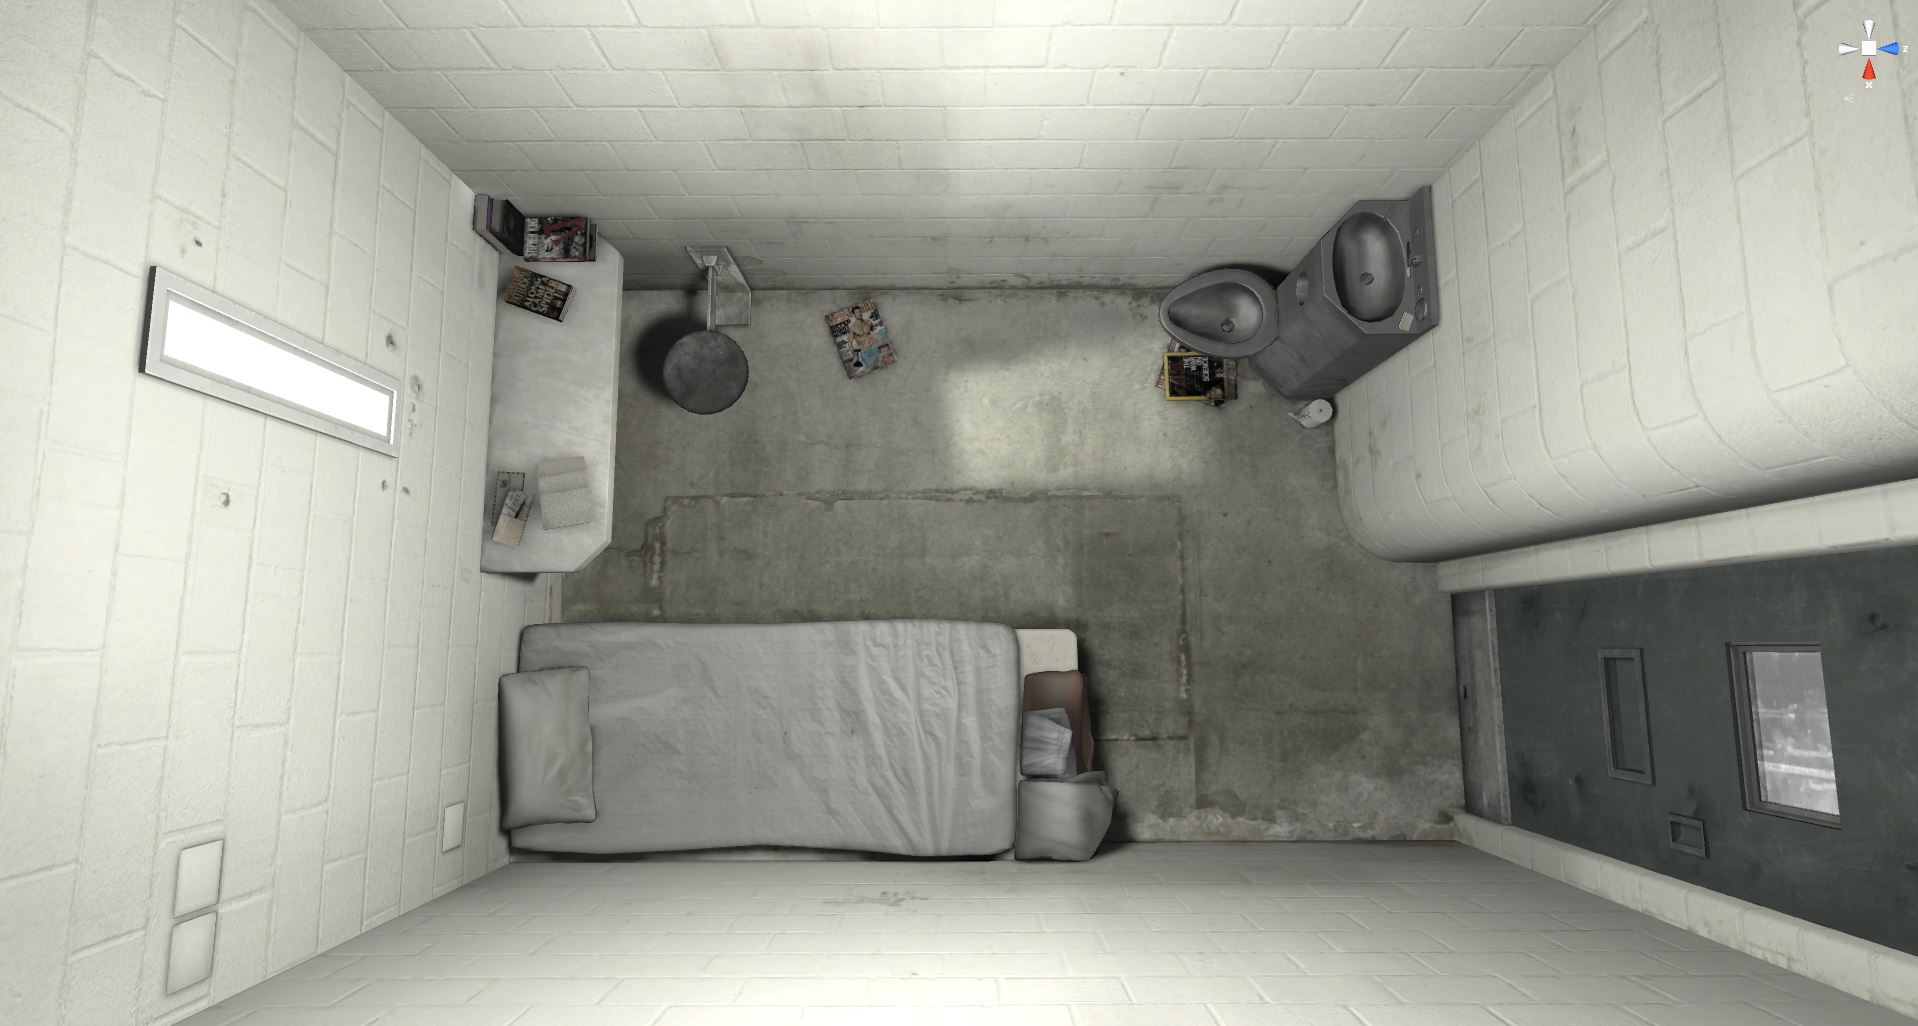 Lindsay Poulton Francesca Panetta 6X9: An Immersive Experience of Solitary Confinement Impact & Innovation Initiative